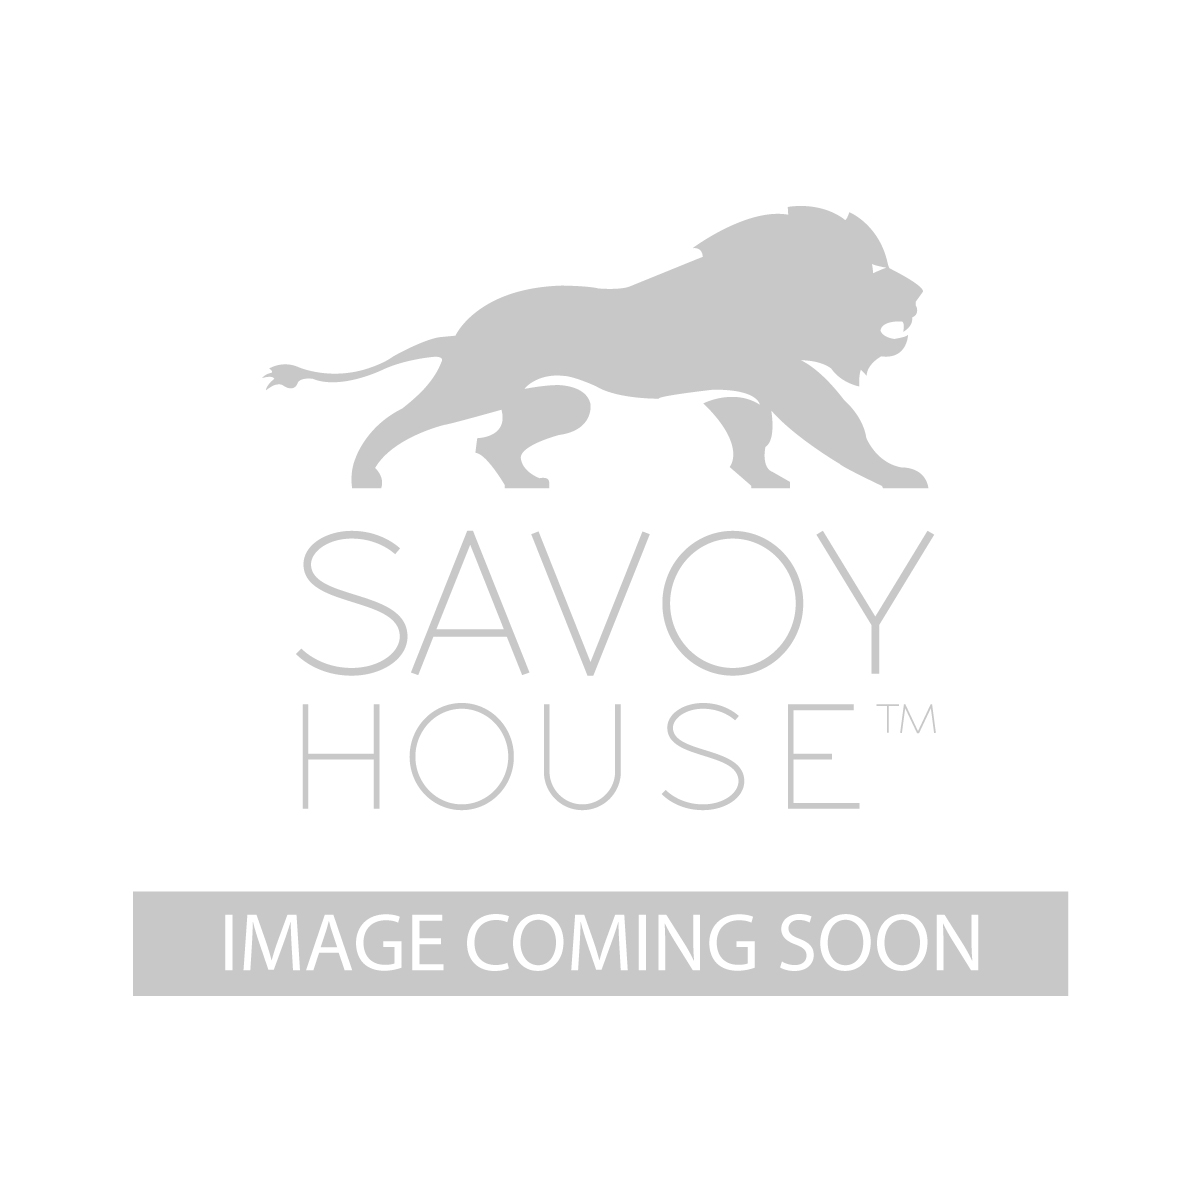 Wall Lights By Savoy House